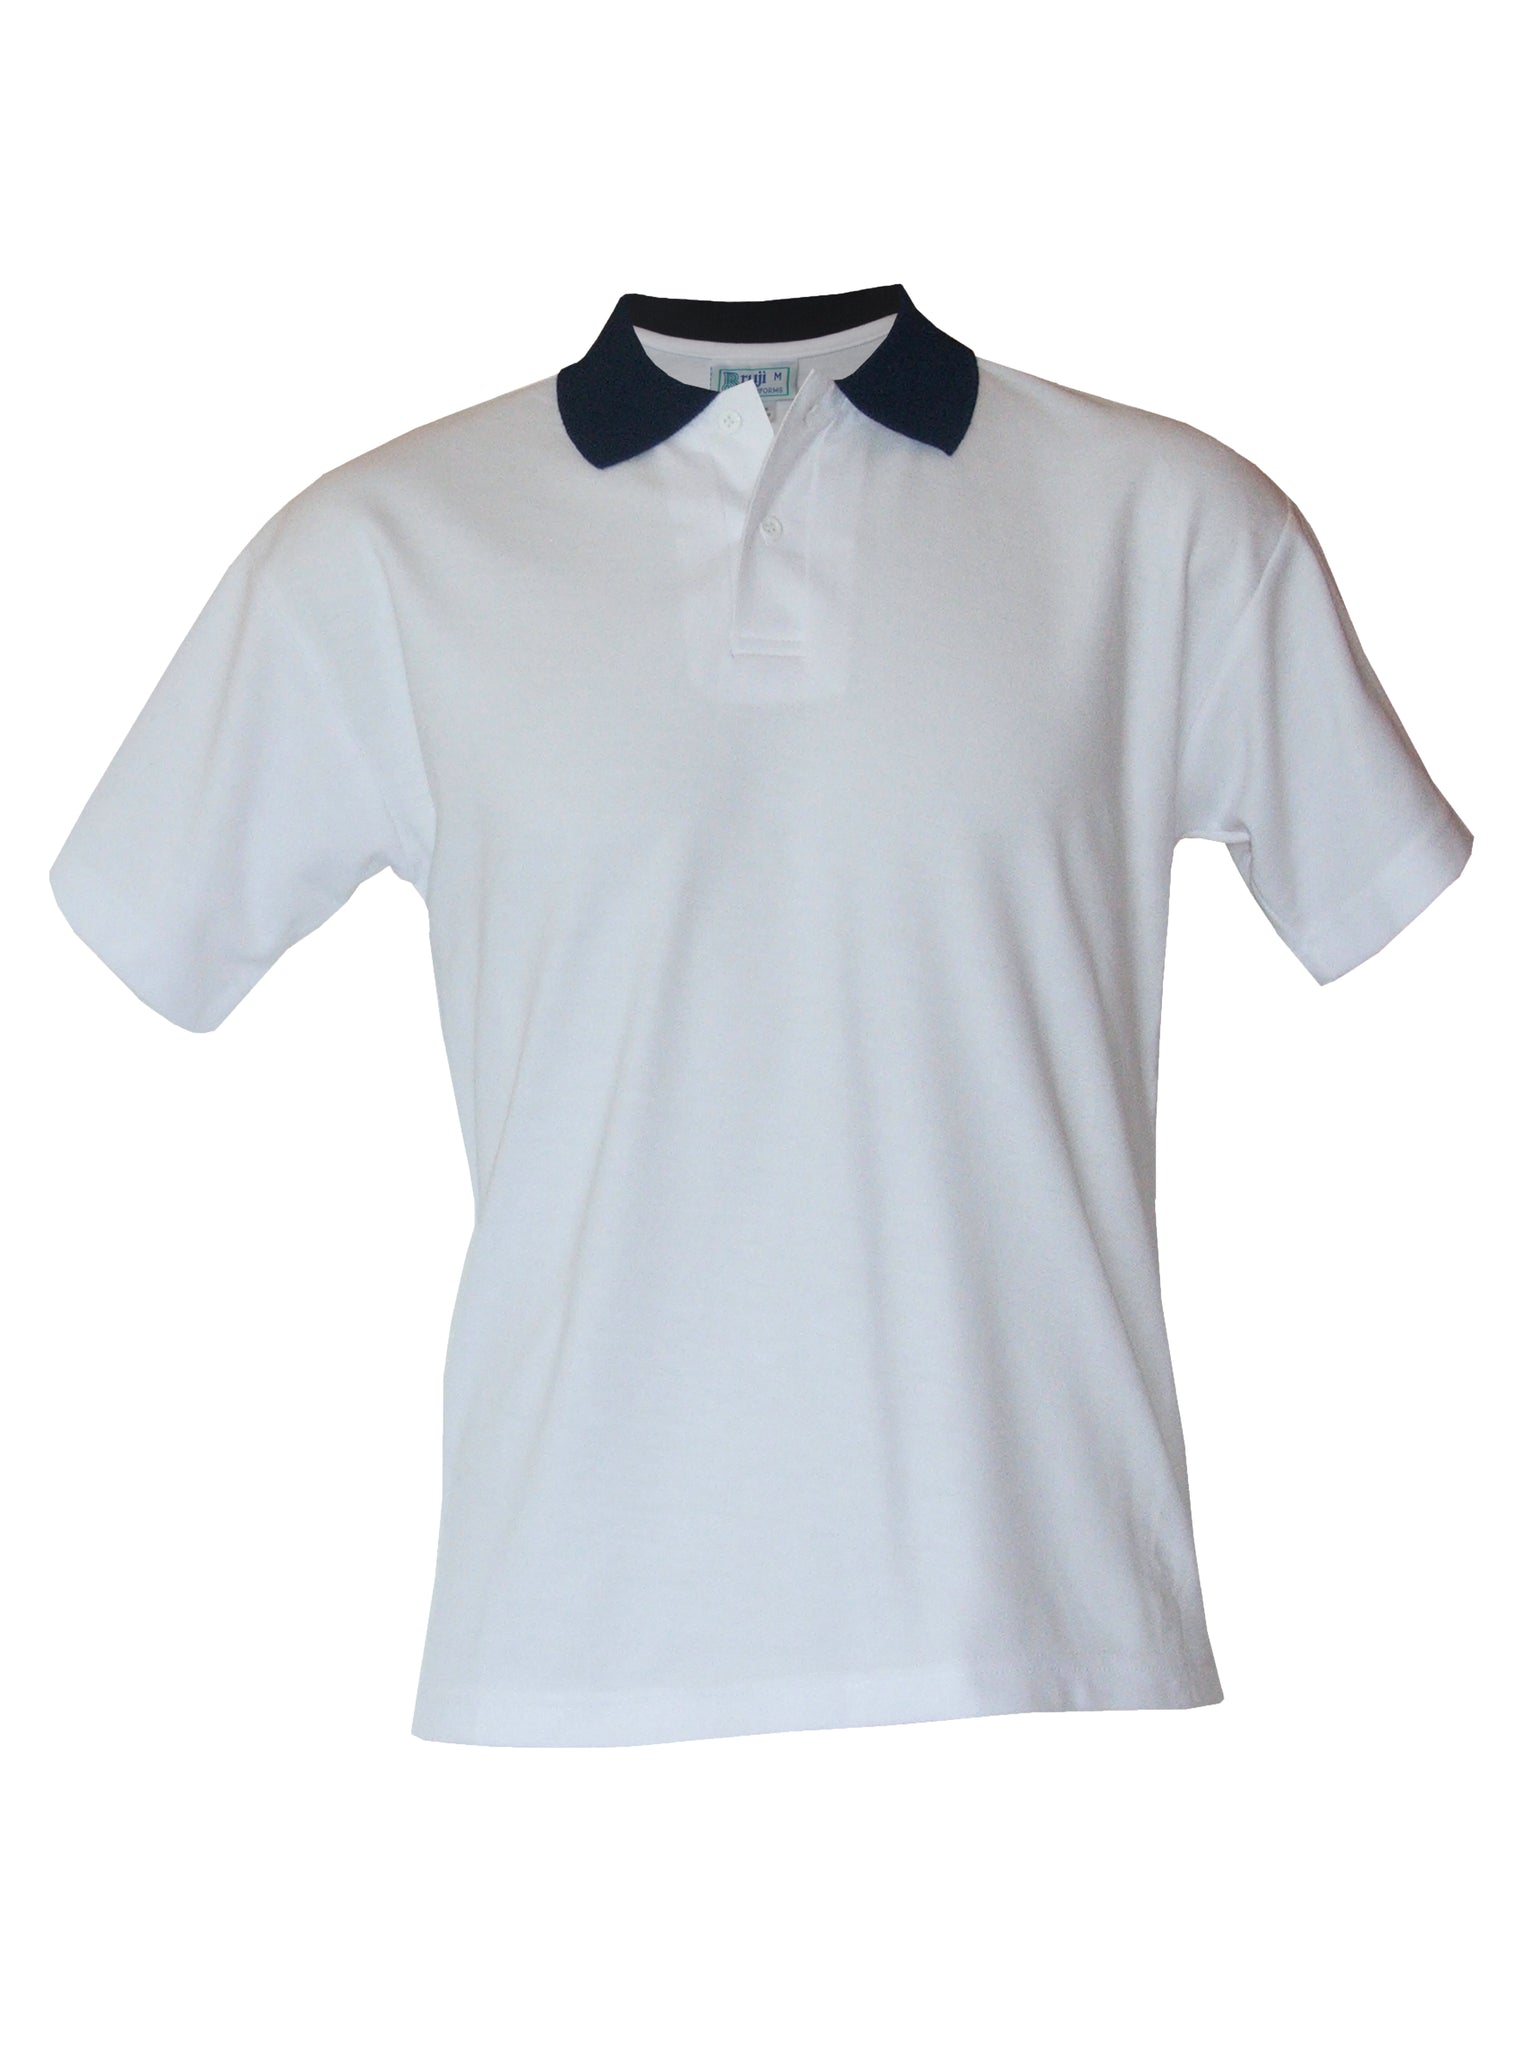 White/Navy Contrast Polo